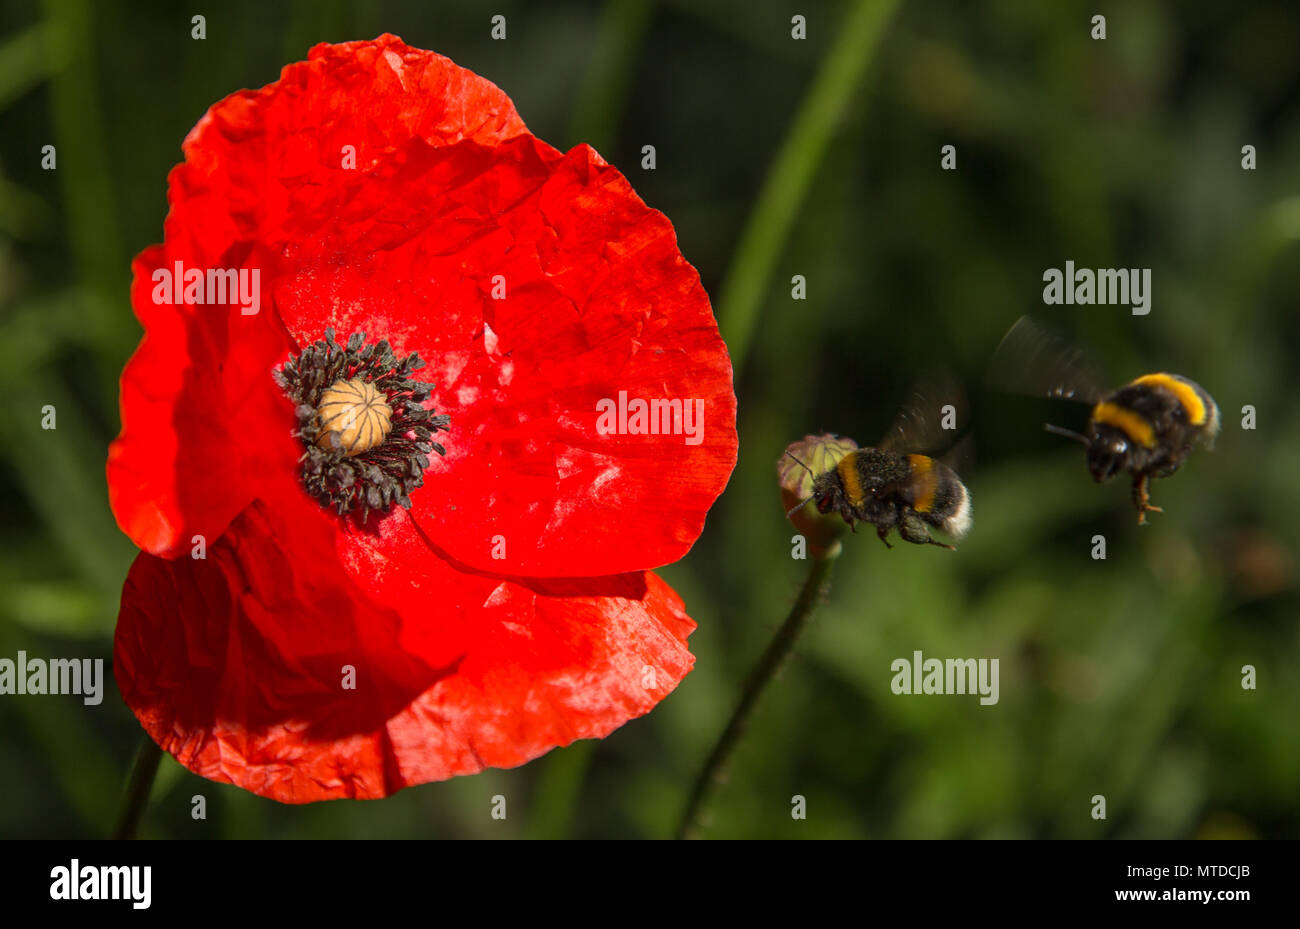 29 May 2018, Germany, Rehda-Wiedenbrueck: Bumblebees approach a poppy on a field. Photo: Friso Gentsch/dpa - Stock Image